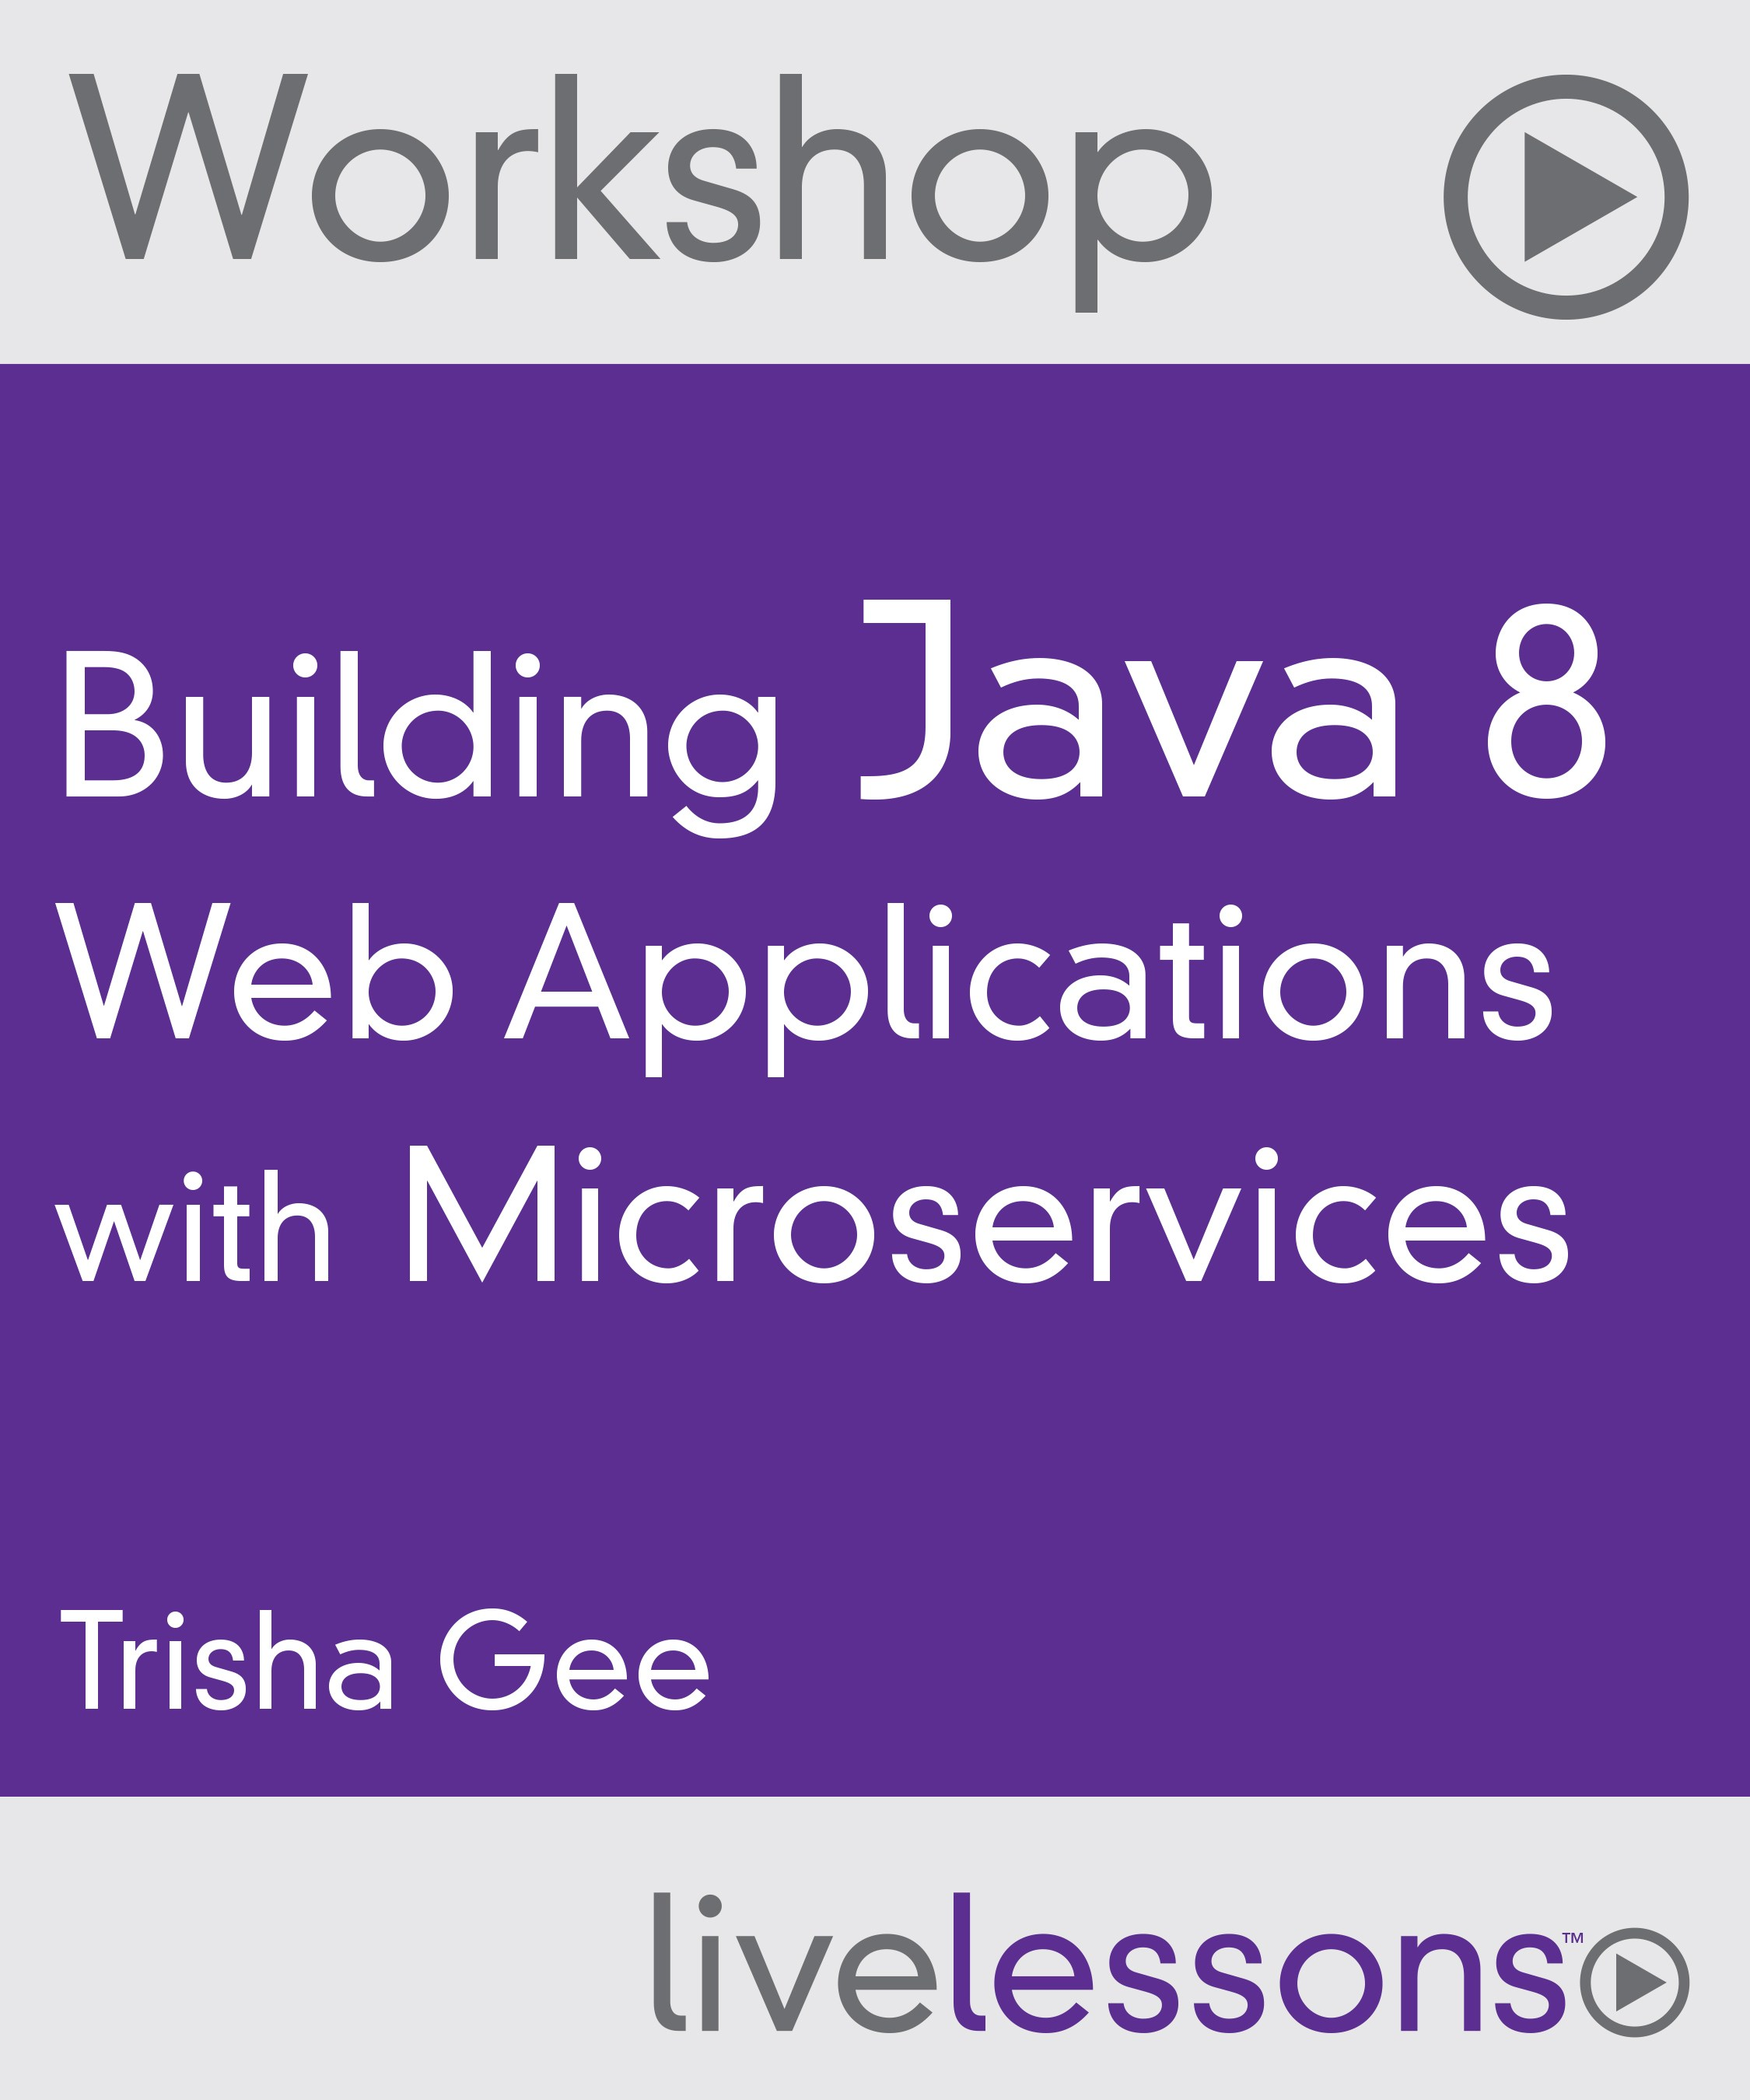 Building Java 8 Web Applications with Microservices (Workshop), LiveLesssons, Downloadable Version